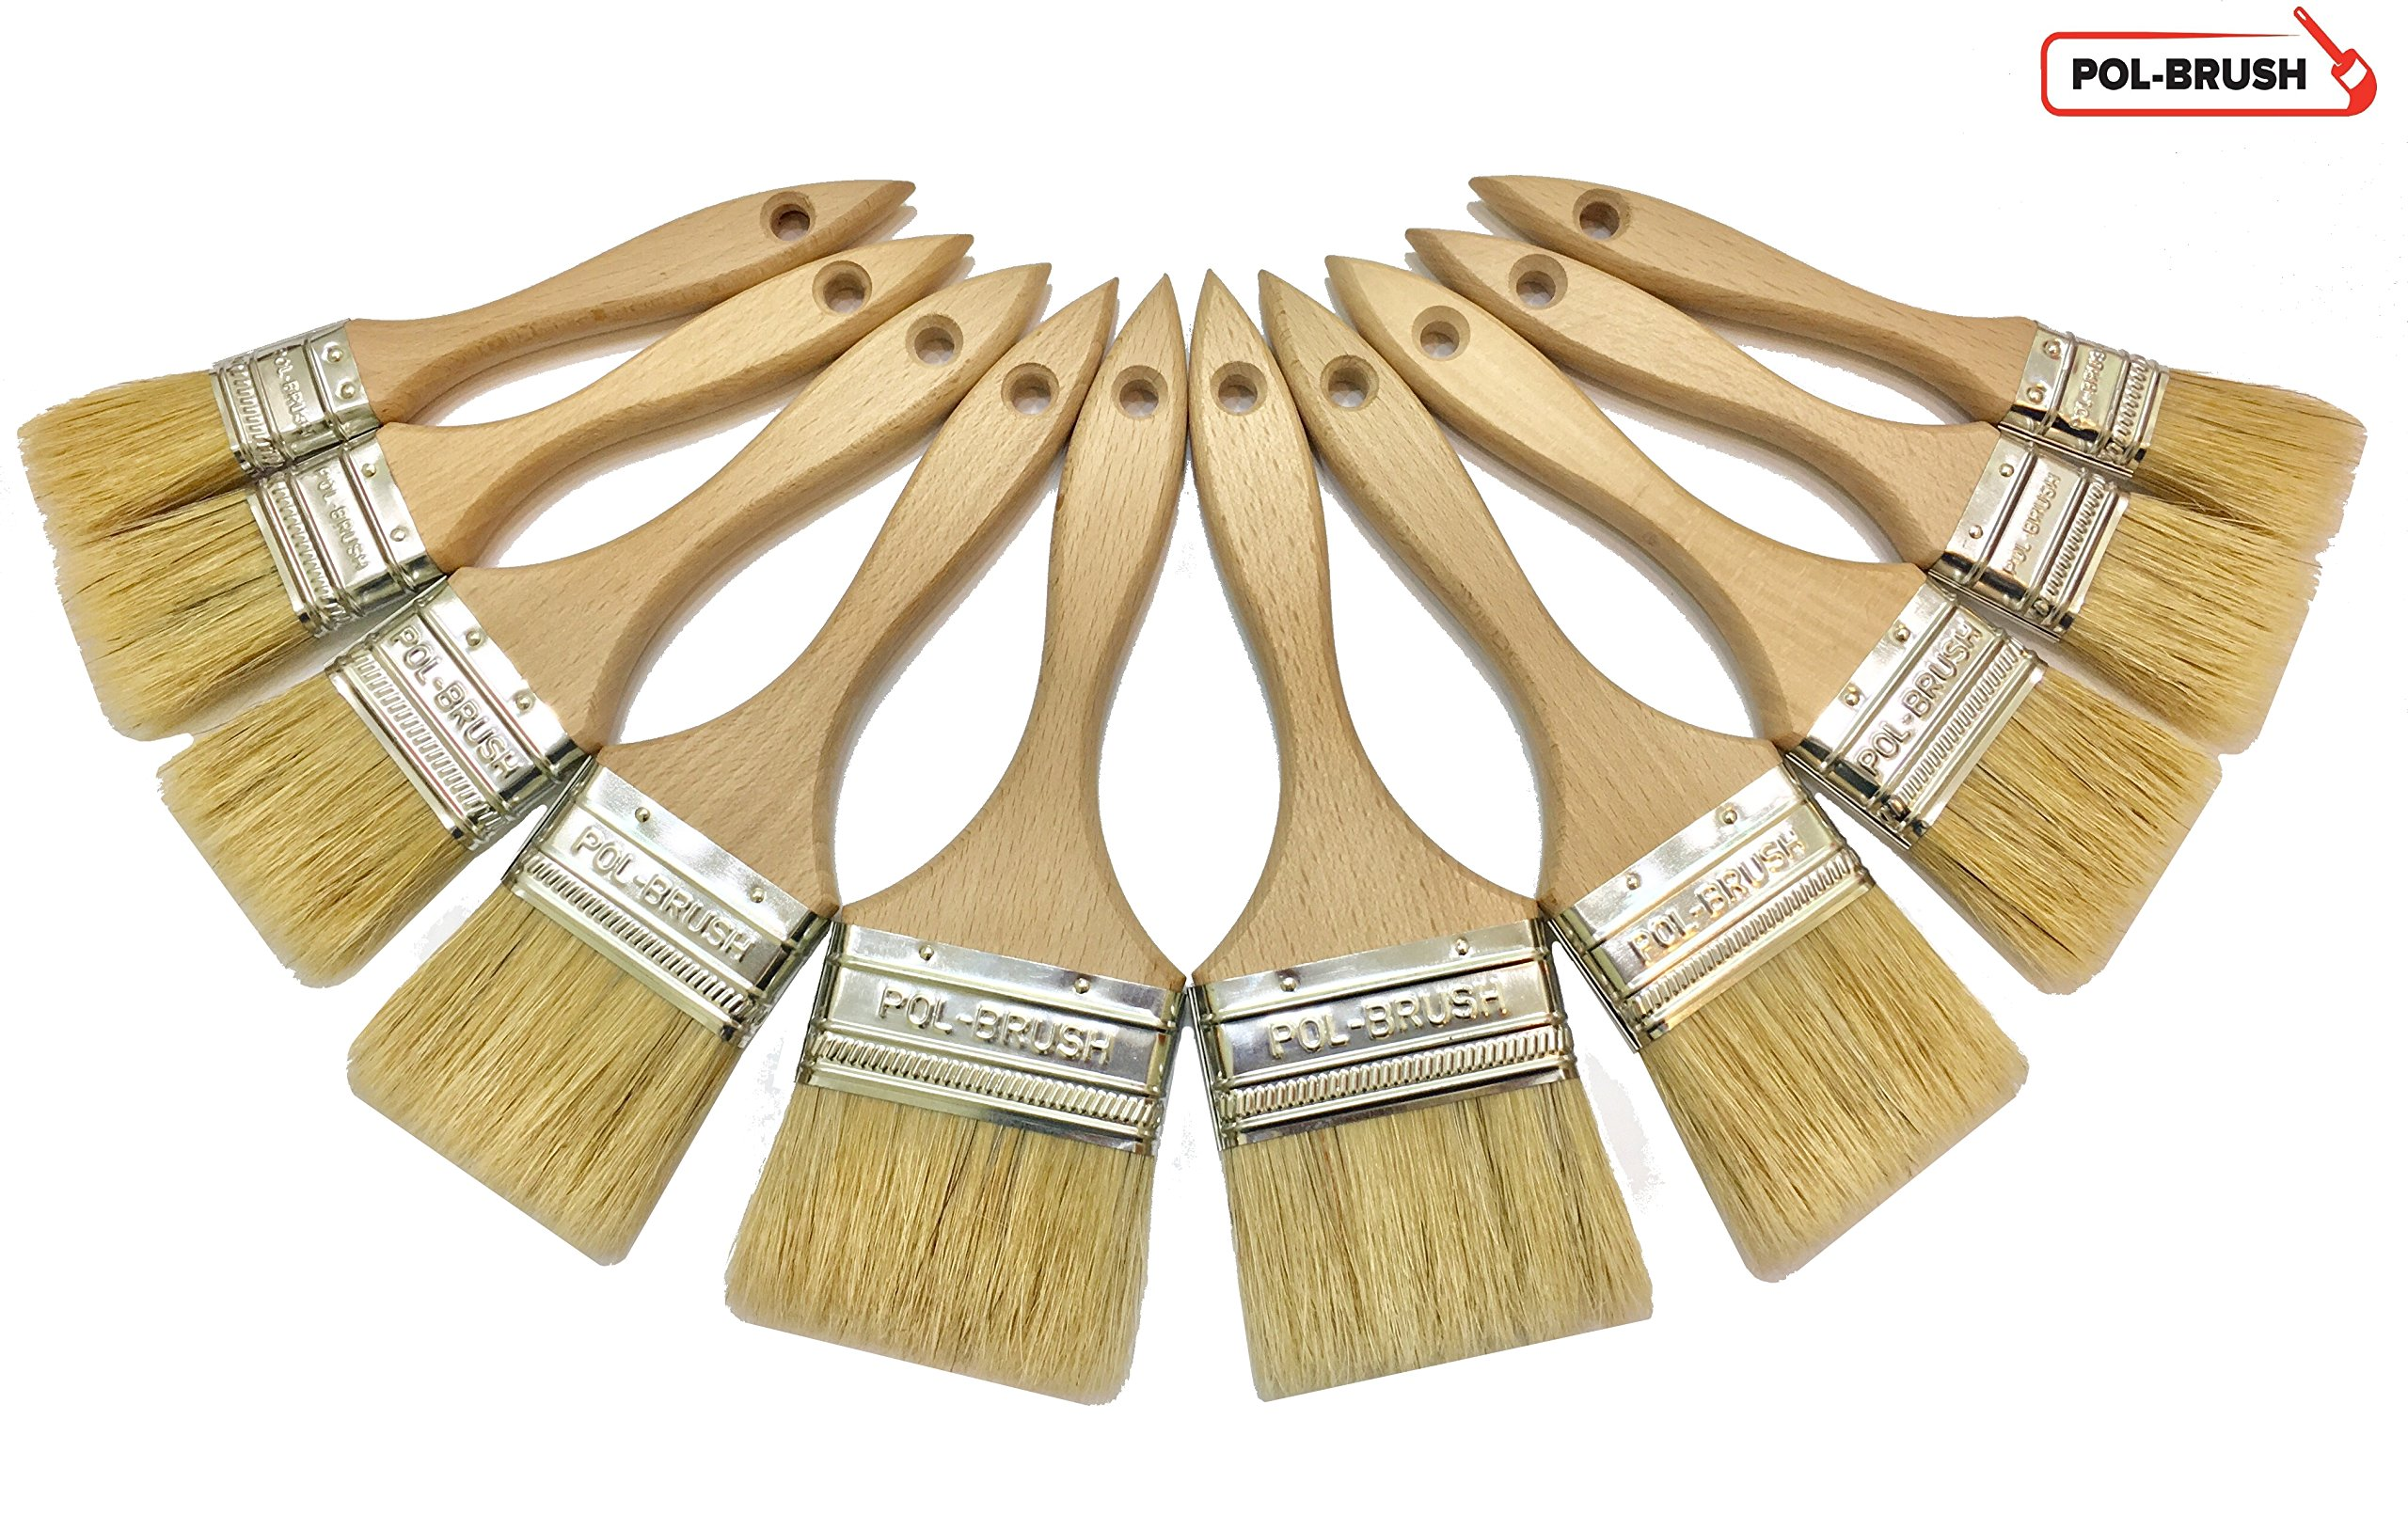 10 Pack - Professional Paint Brushes - Natural BristleWood Handle; For Professional & Amateur Paint Job, Oil Stain, Wax, Varnish, Glue and etc.